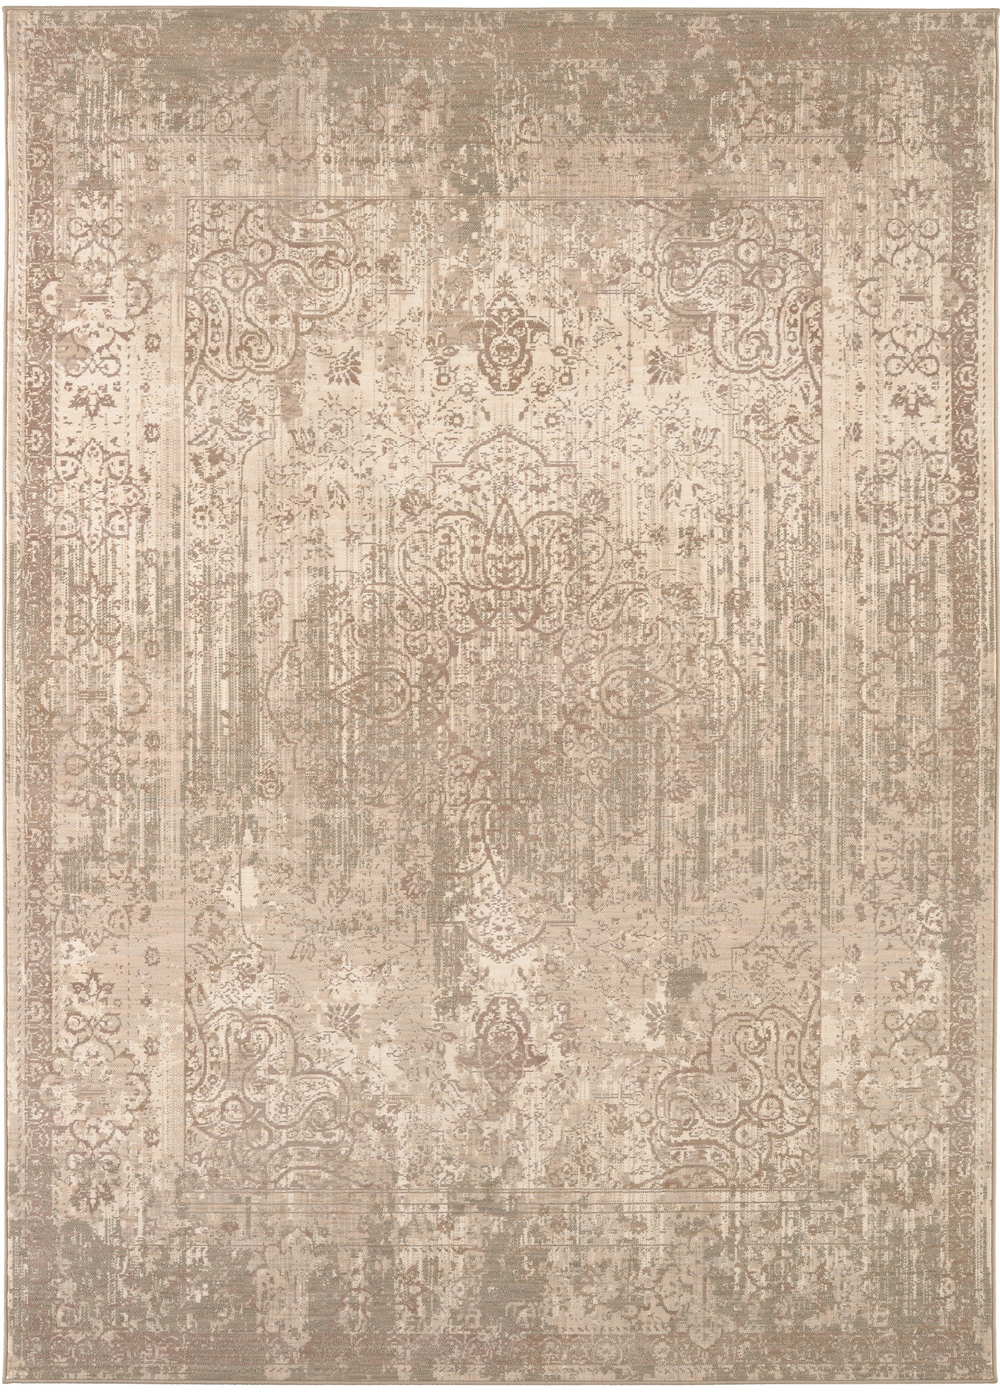 Karastan Kismet Karma Blush Natural Cotton Rug